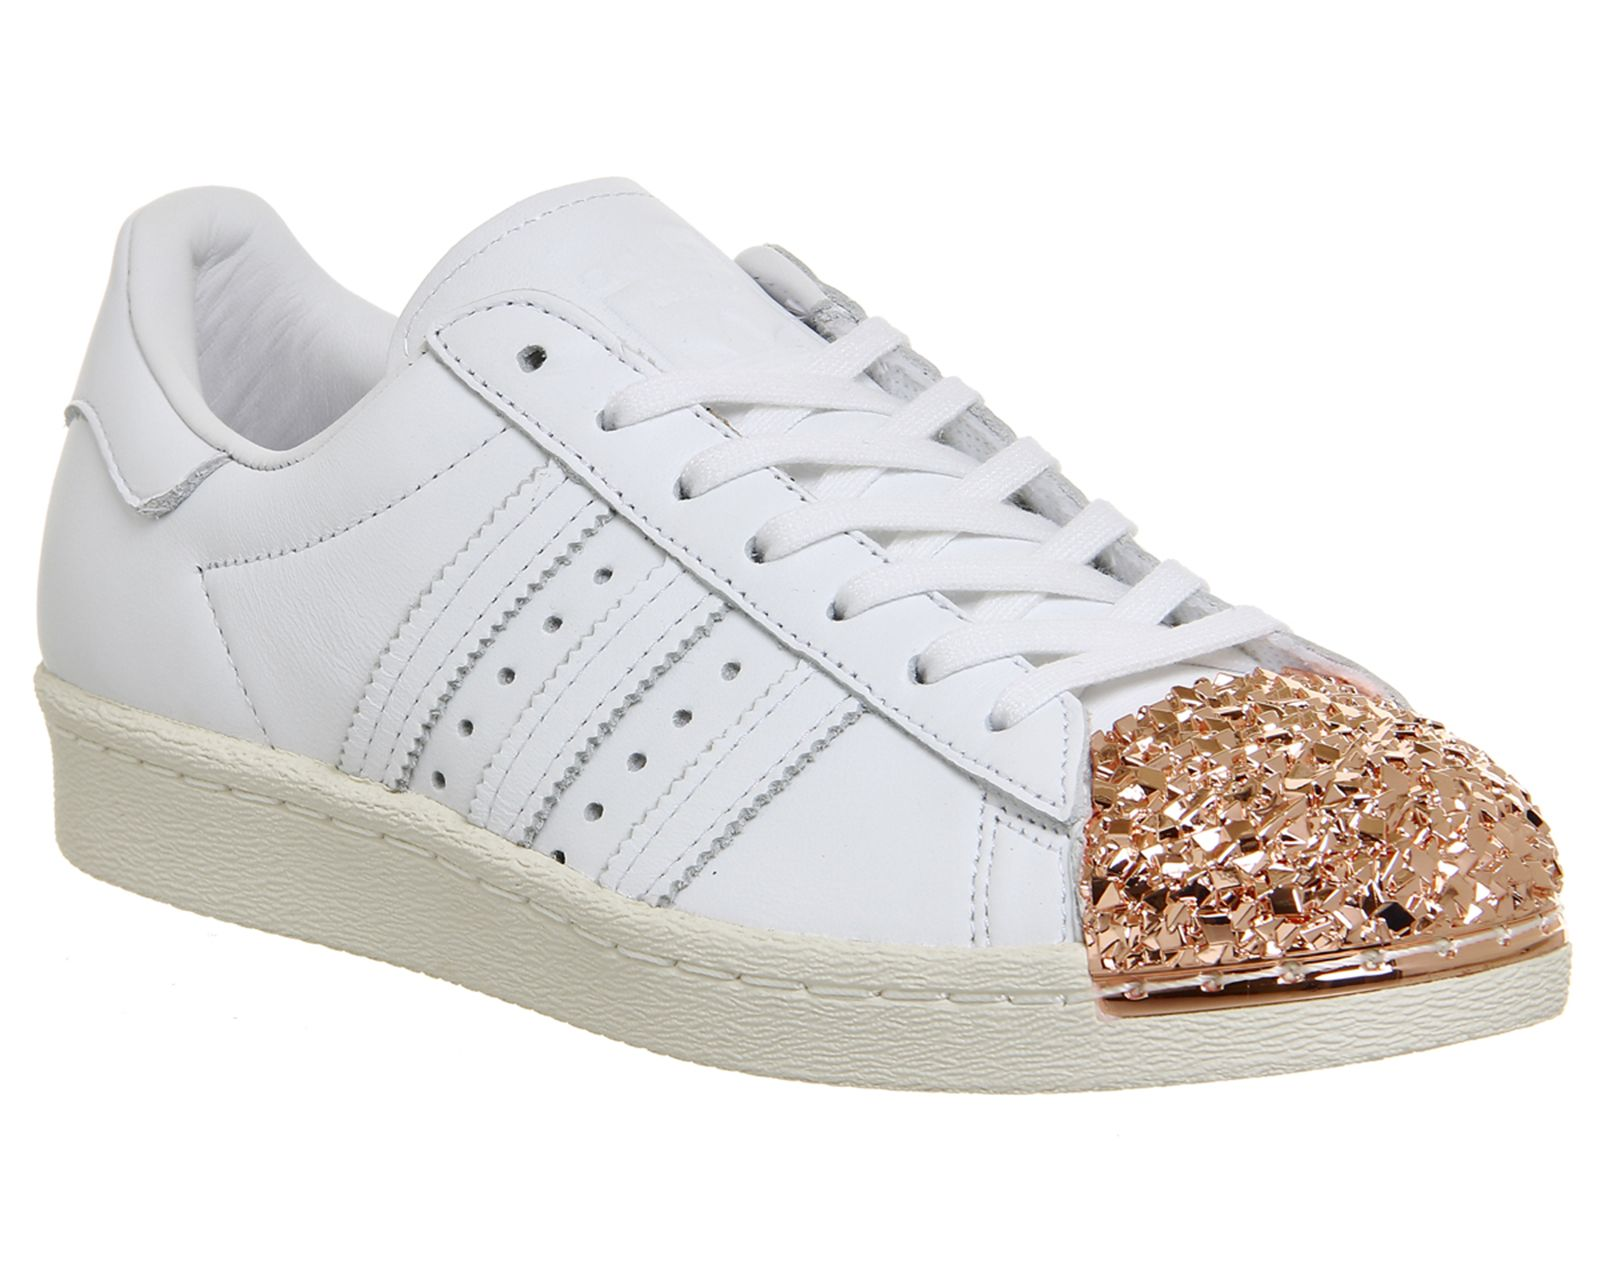 Cheap Adidas Originals Superstar Men's Basketball Shoes